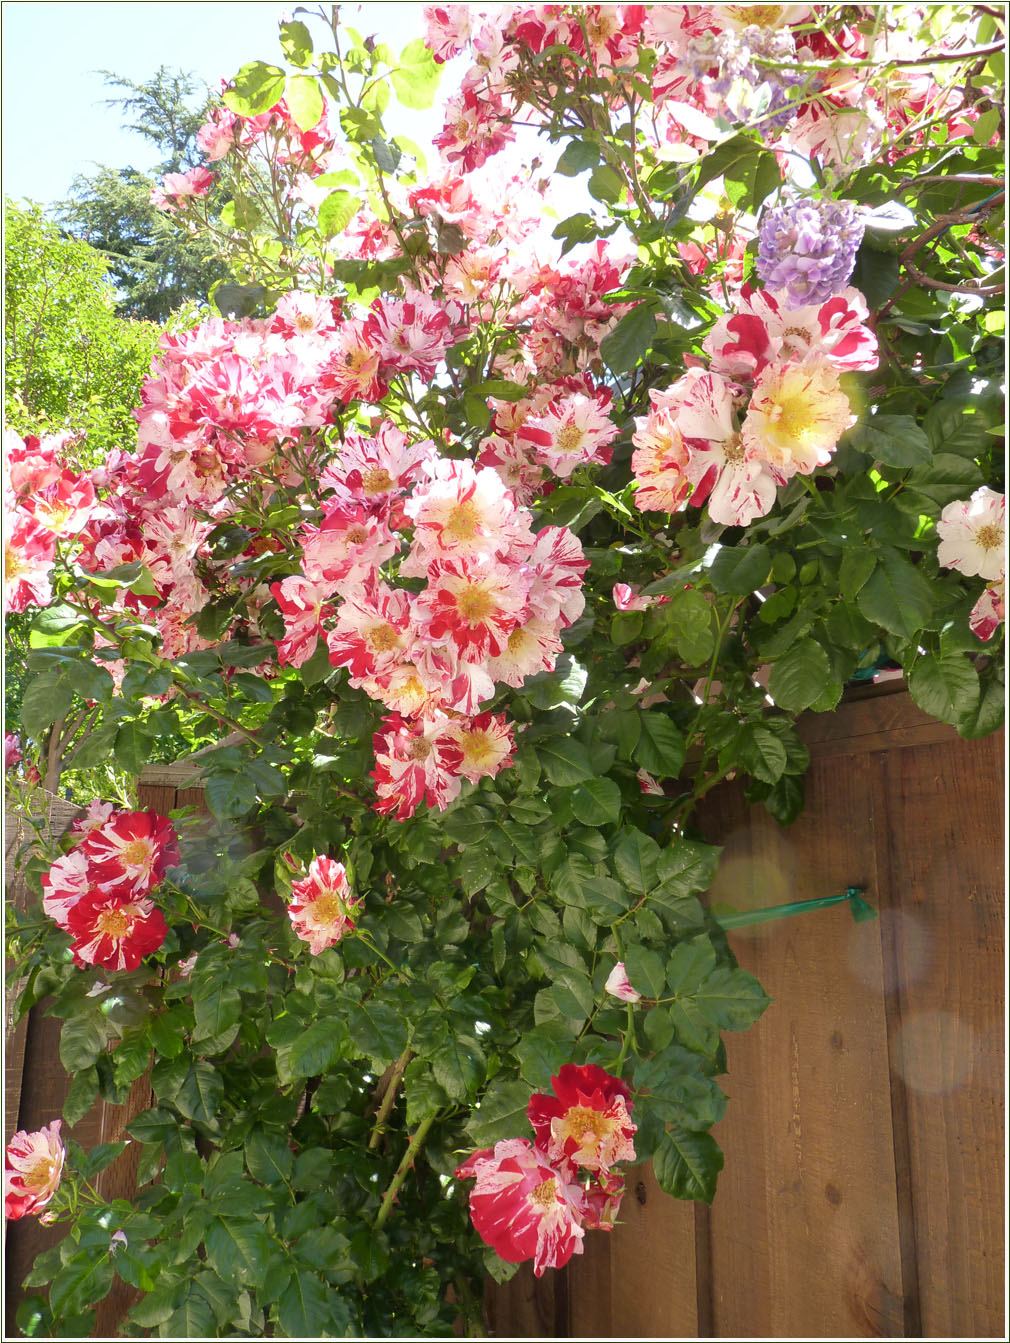 Beautiful rose gardens of the world - The Most Beautiful Climbing Rose In The Garden Is Trying With Great Success To Welcome Who Ever Go Through The Southern Gate To Our Garden